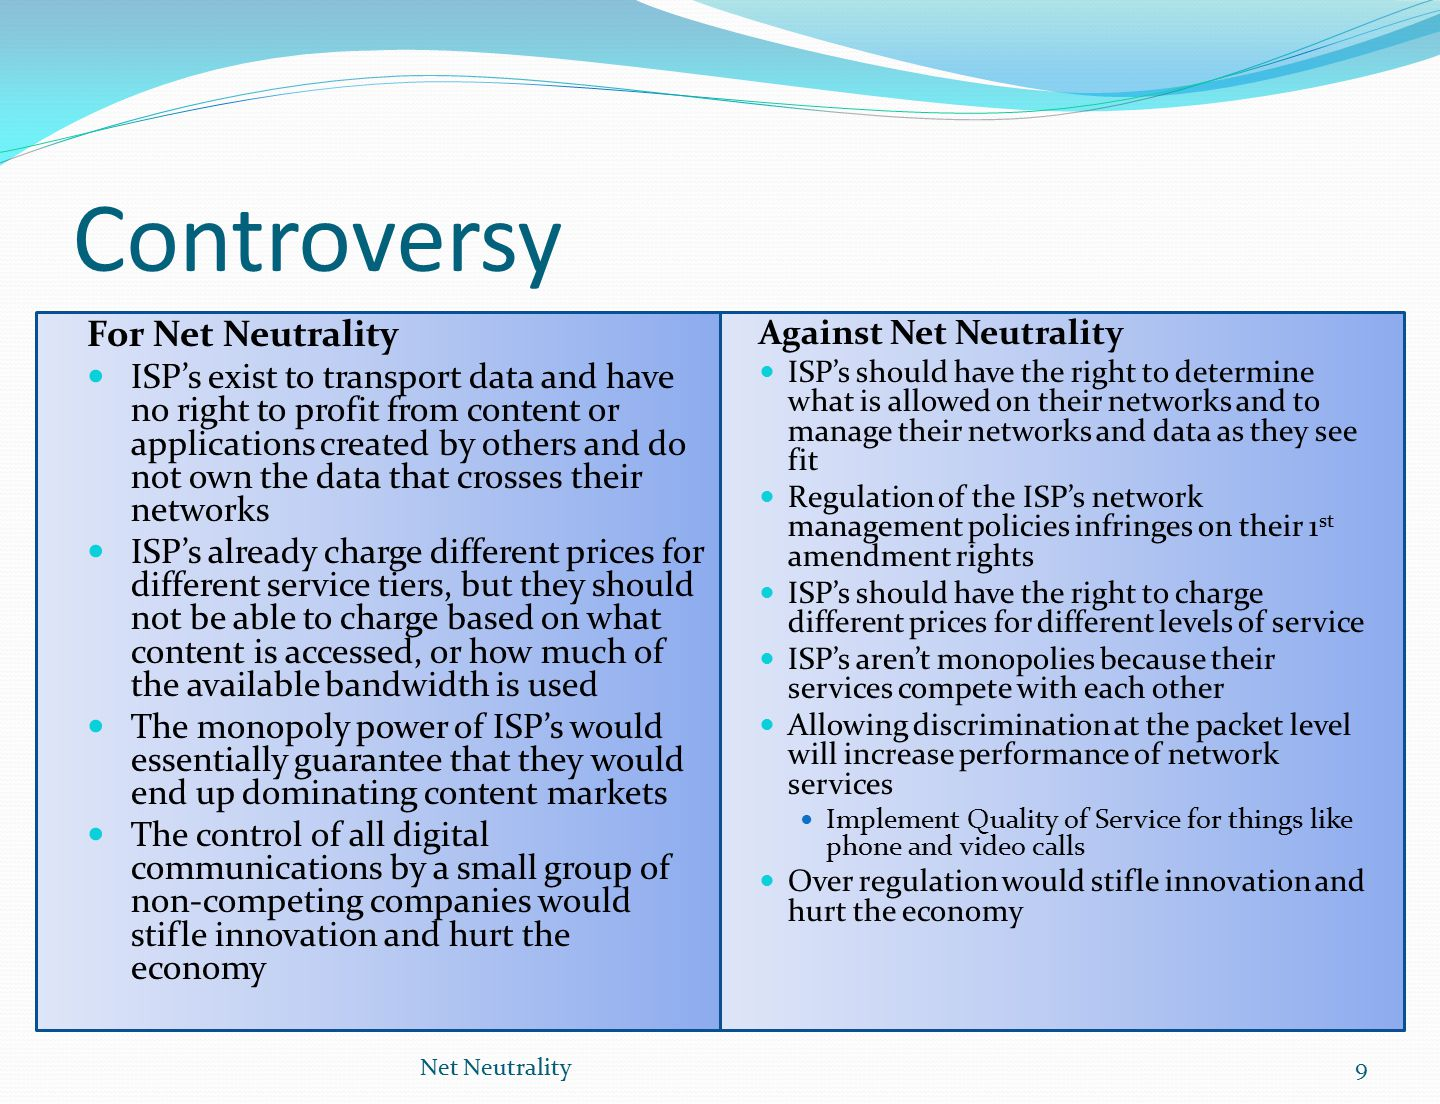 Controversy For Net Neutrality ISP's exist to transport data and have no right to profit from content or applications created by others and do not own the data that crosses their networks ISP's already charge different prices for different service tiers, but they should not be able to charge based on what content is accessed, or how much of the available bandwidth is used The monopoly power of ISP's would essentially guarantee that they would end up dominating content markets The control of all digital communications by a small group of non-competing companies would stifle innovation and hurt the economy Net Neutrality9 Against Net Neutrality ISP's should have the right to determine what is allowed on their networks and to manage their networks and data as they see fit Regulation of the ISP's network management policies infringes on their 1 st amendment rights ISP's should have the right to charge different prices for different levels of service ISP's aren't monopolies because their services compete with each other Allowing discrimination at the packet level will increase performance of network services Implement Quality of Service for things like phone and video calls Over regulation would stifle innovation and hurt the economy